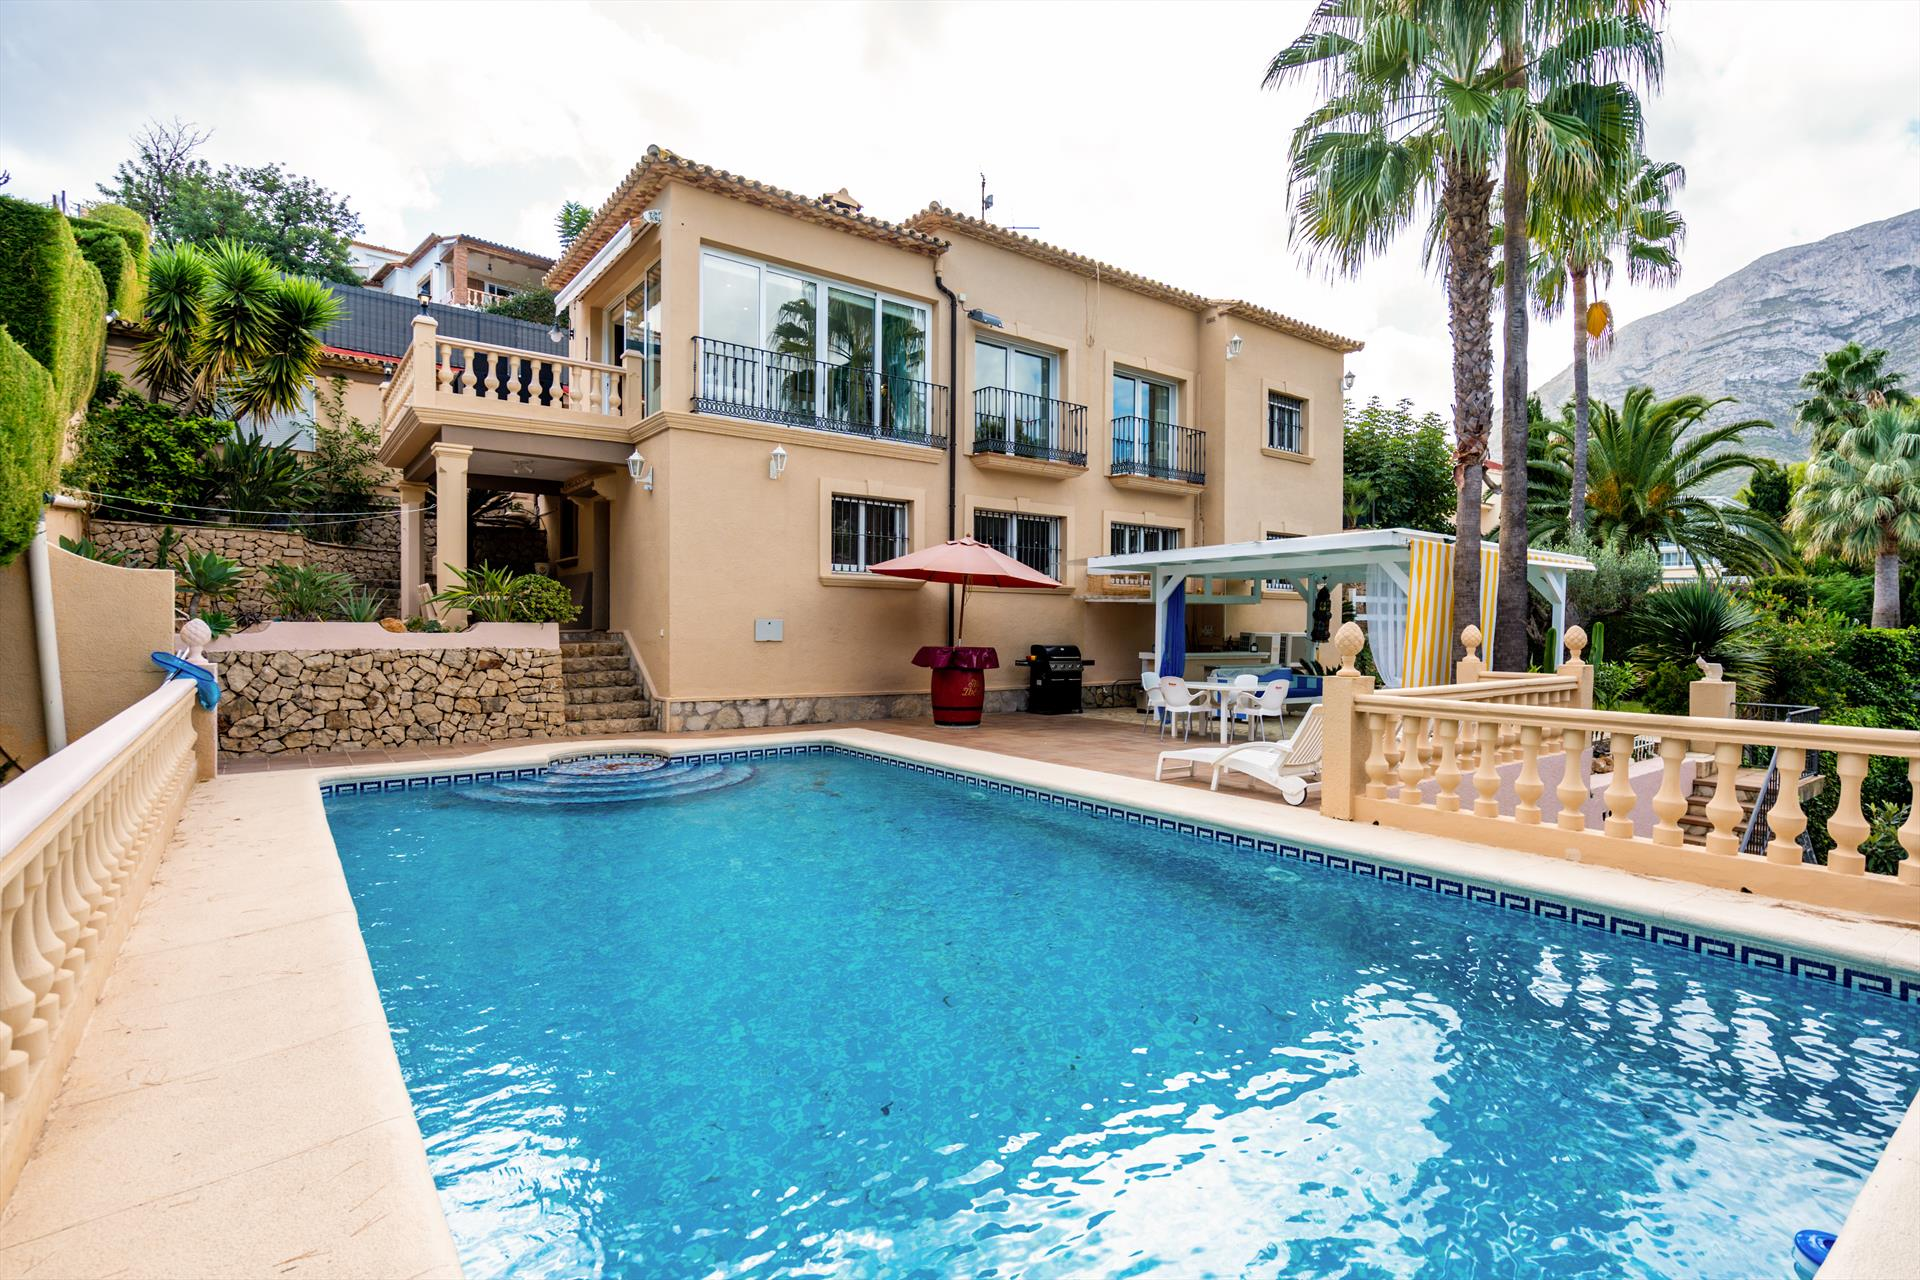 Flavie 6 pax, Large and classic villa in Denia, on the Costa Blanca, Spain  with private pool for 6 persons.....